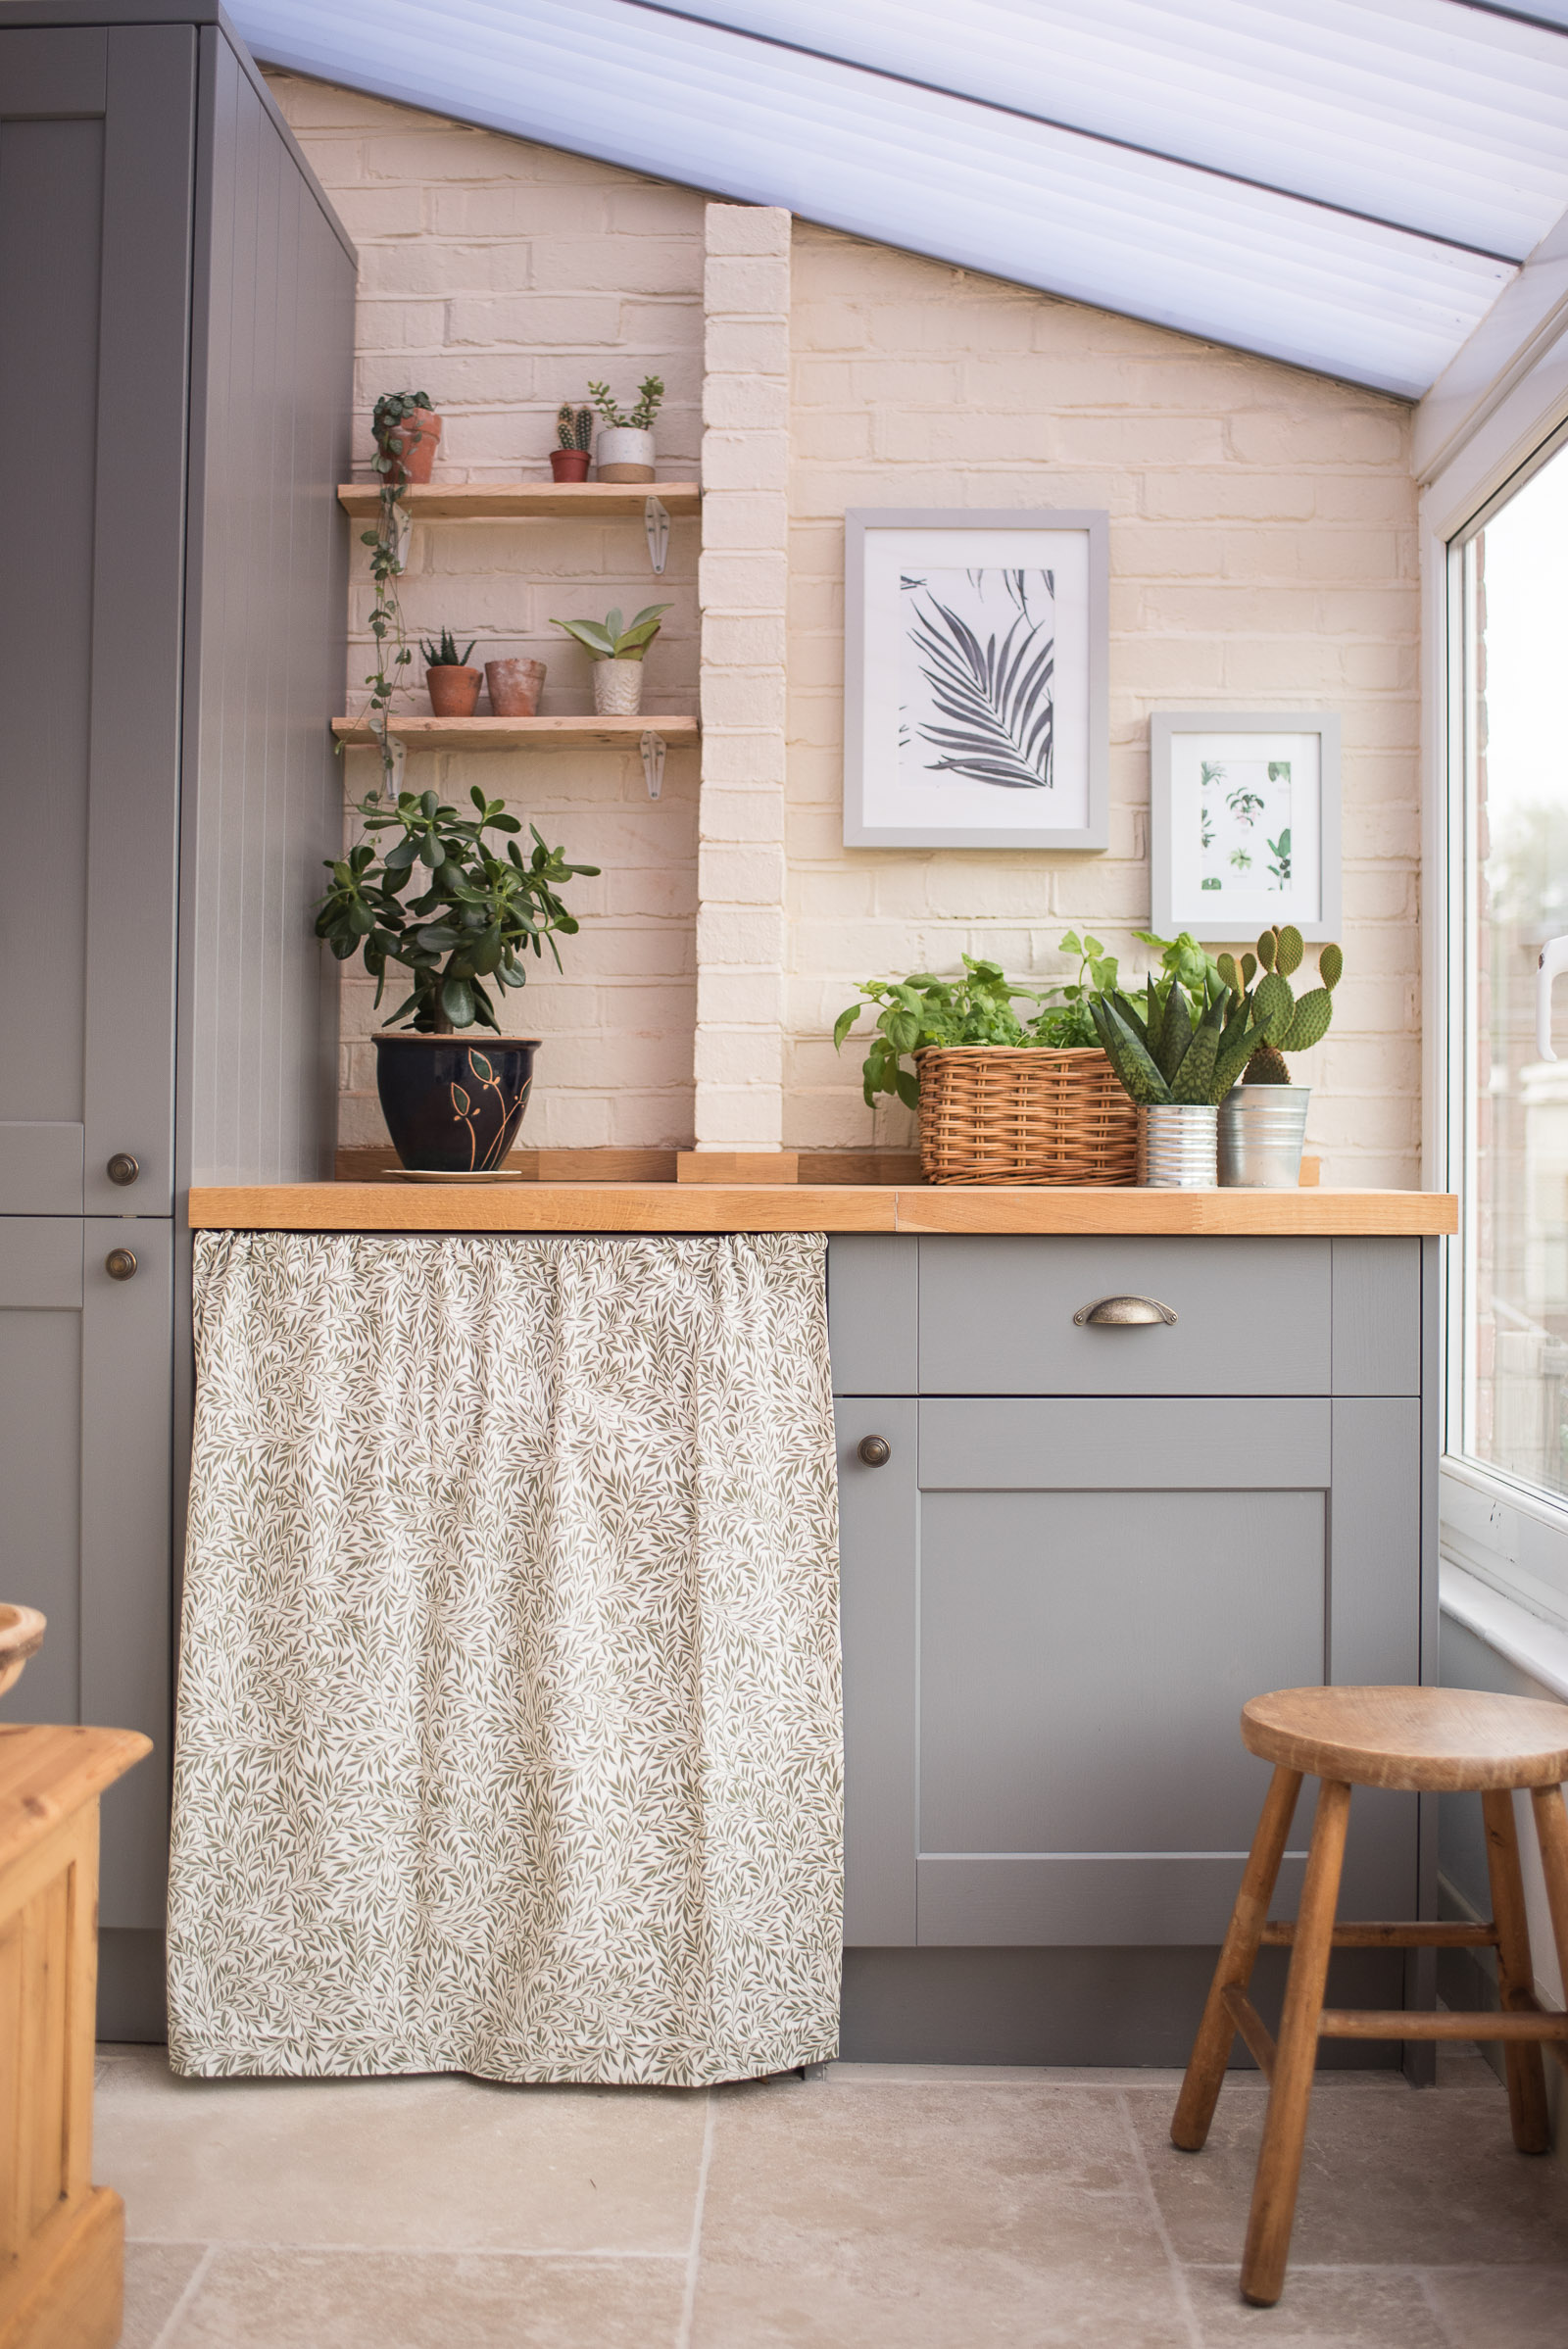 Our Utility Room Makeover Fifi Mcgee Interiors Renovation Blog